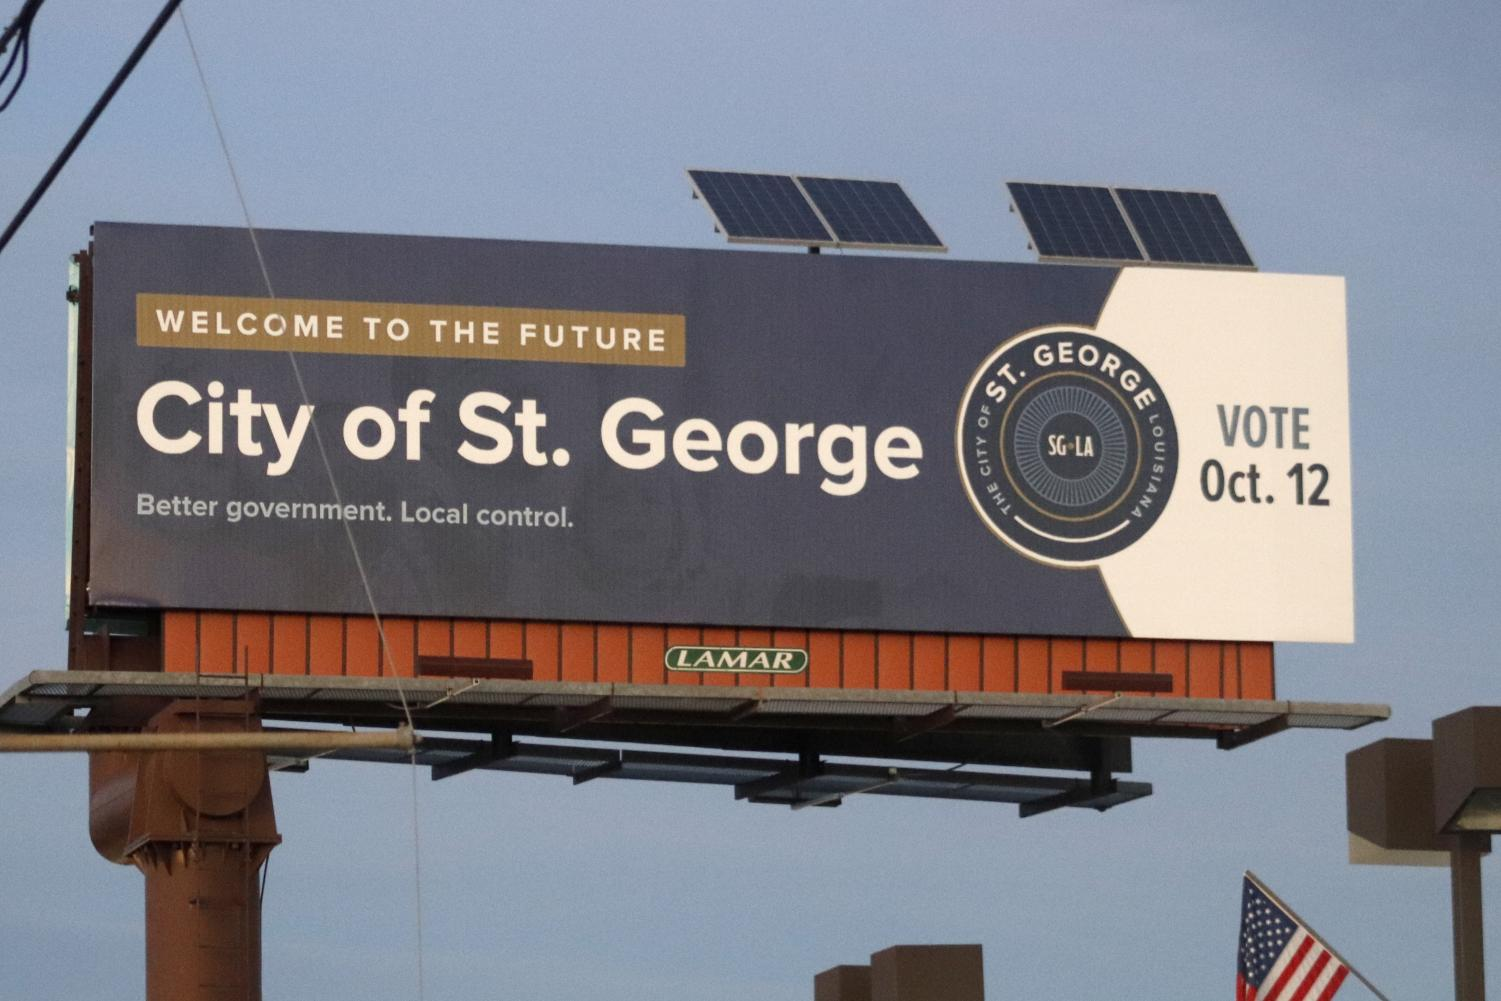 A sign on Siegan Lane near I-10 in Baton Rouge encouraged voters to pass the proposal for the City of St. George on Oct. 12. The proposal passed with 54% of voters supporting the new city.